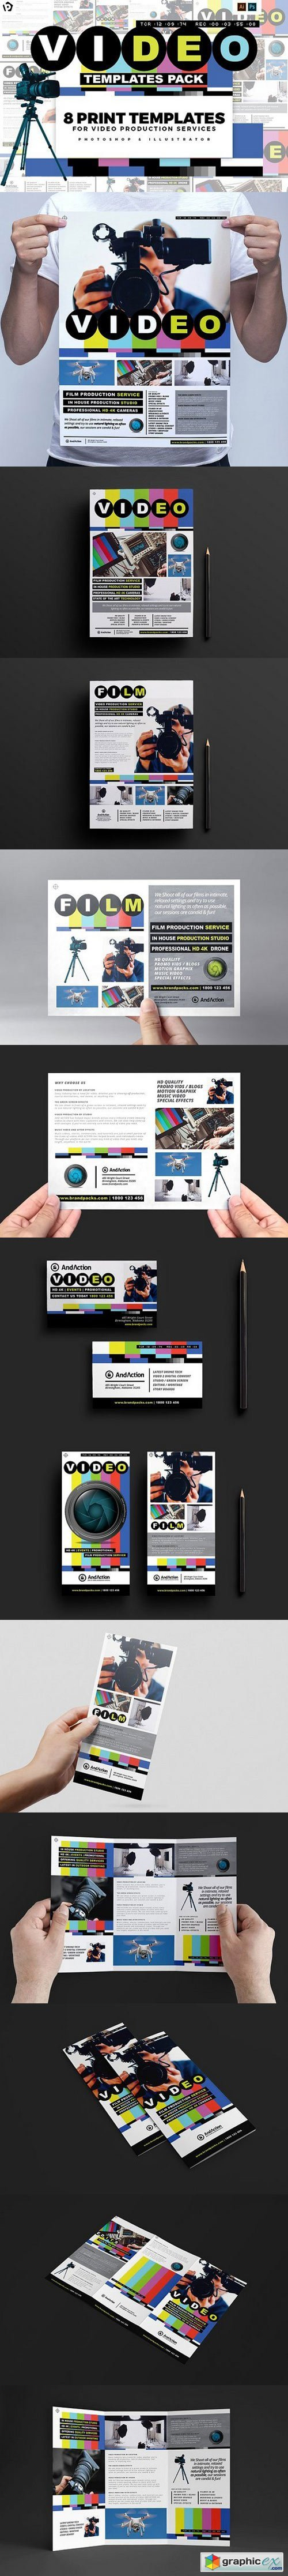 Videographer Templates Pack